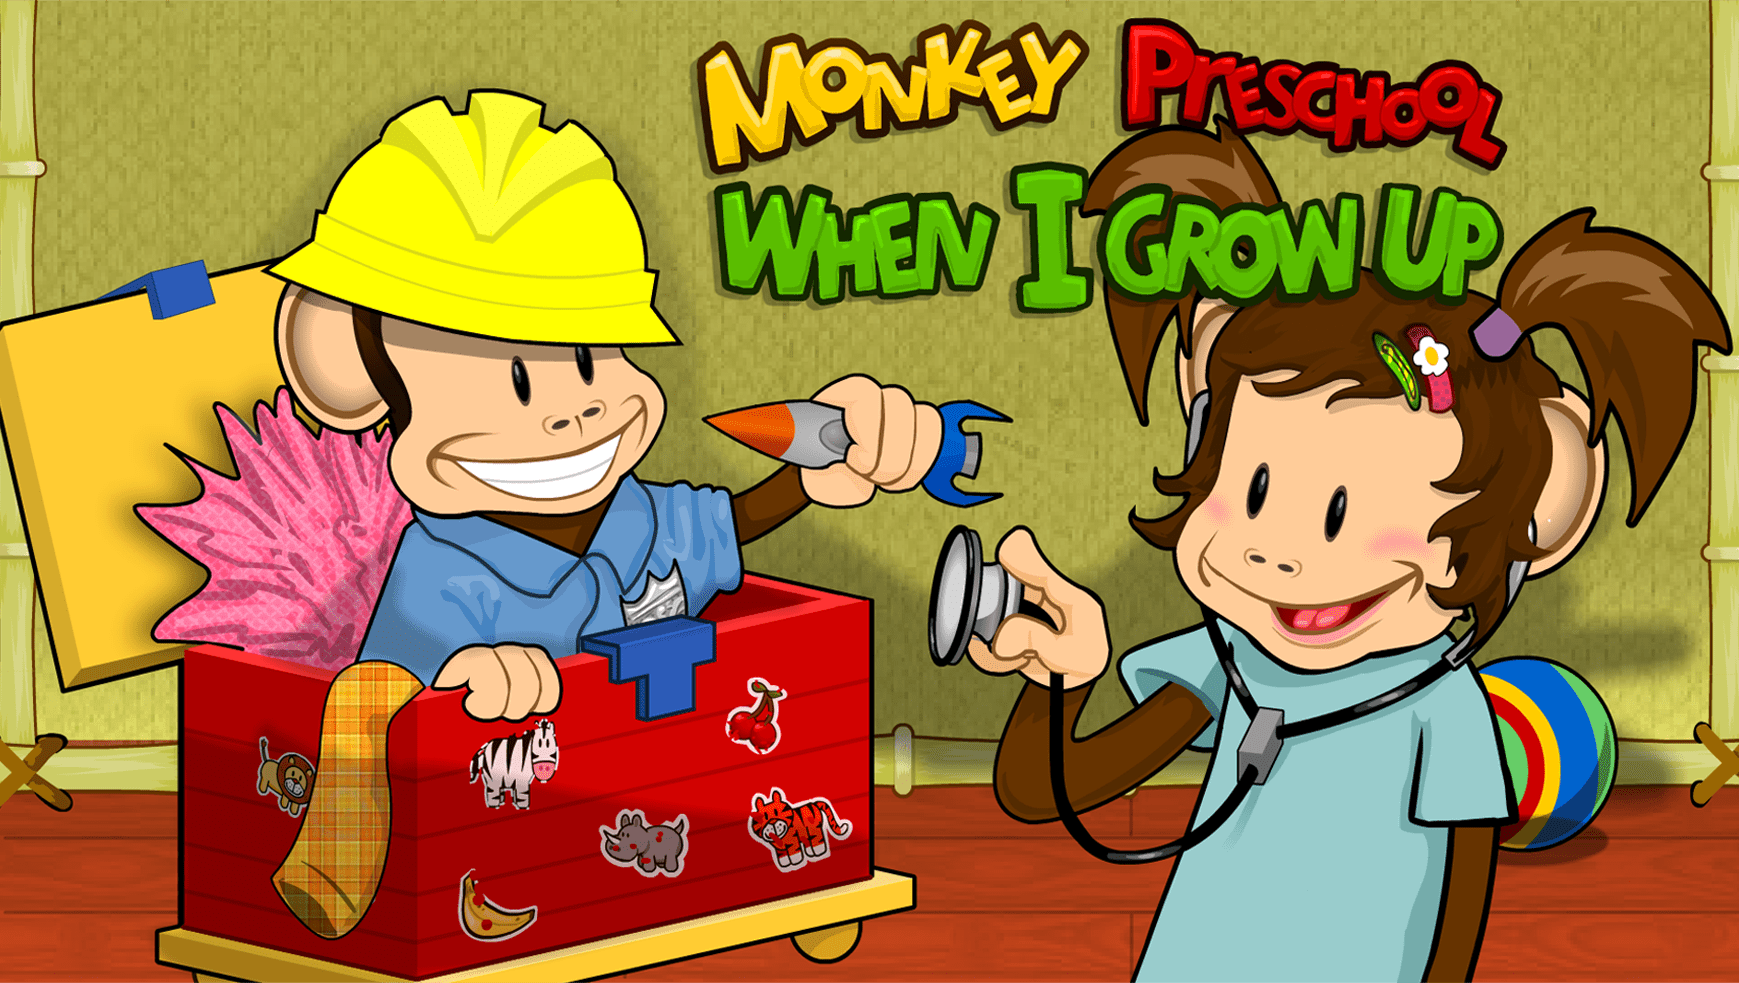 Monkey Preschool: When I Grow Up